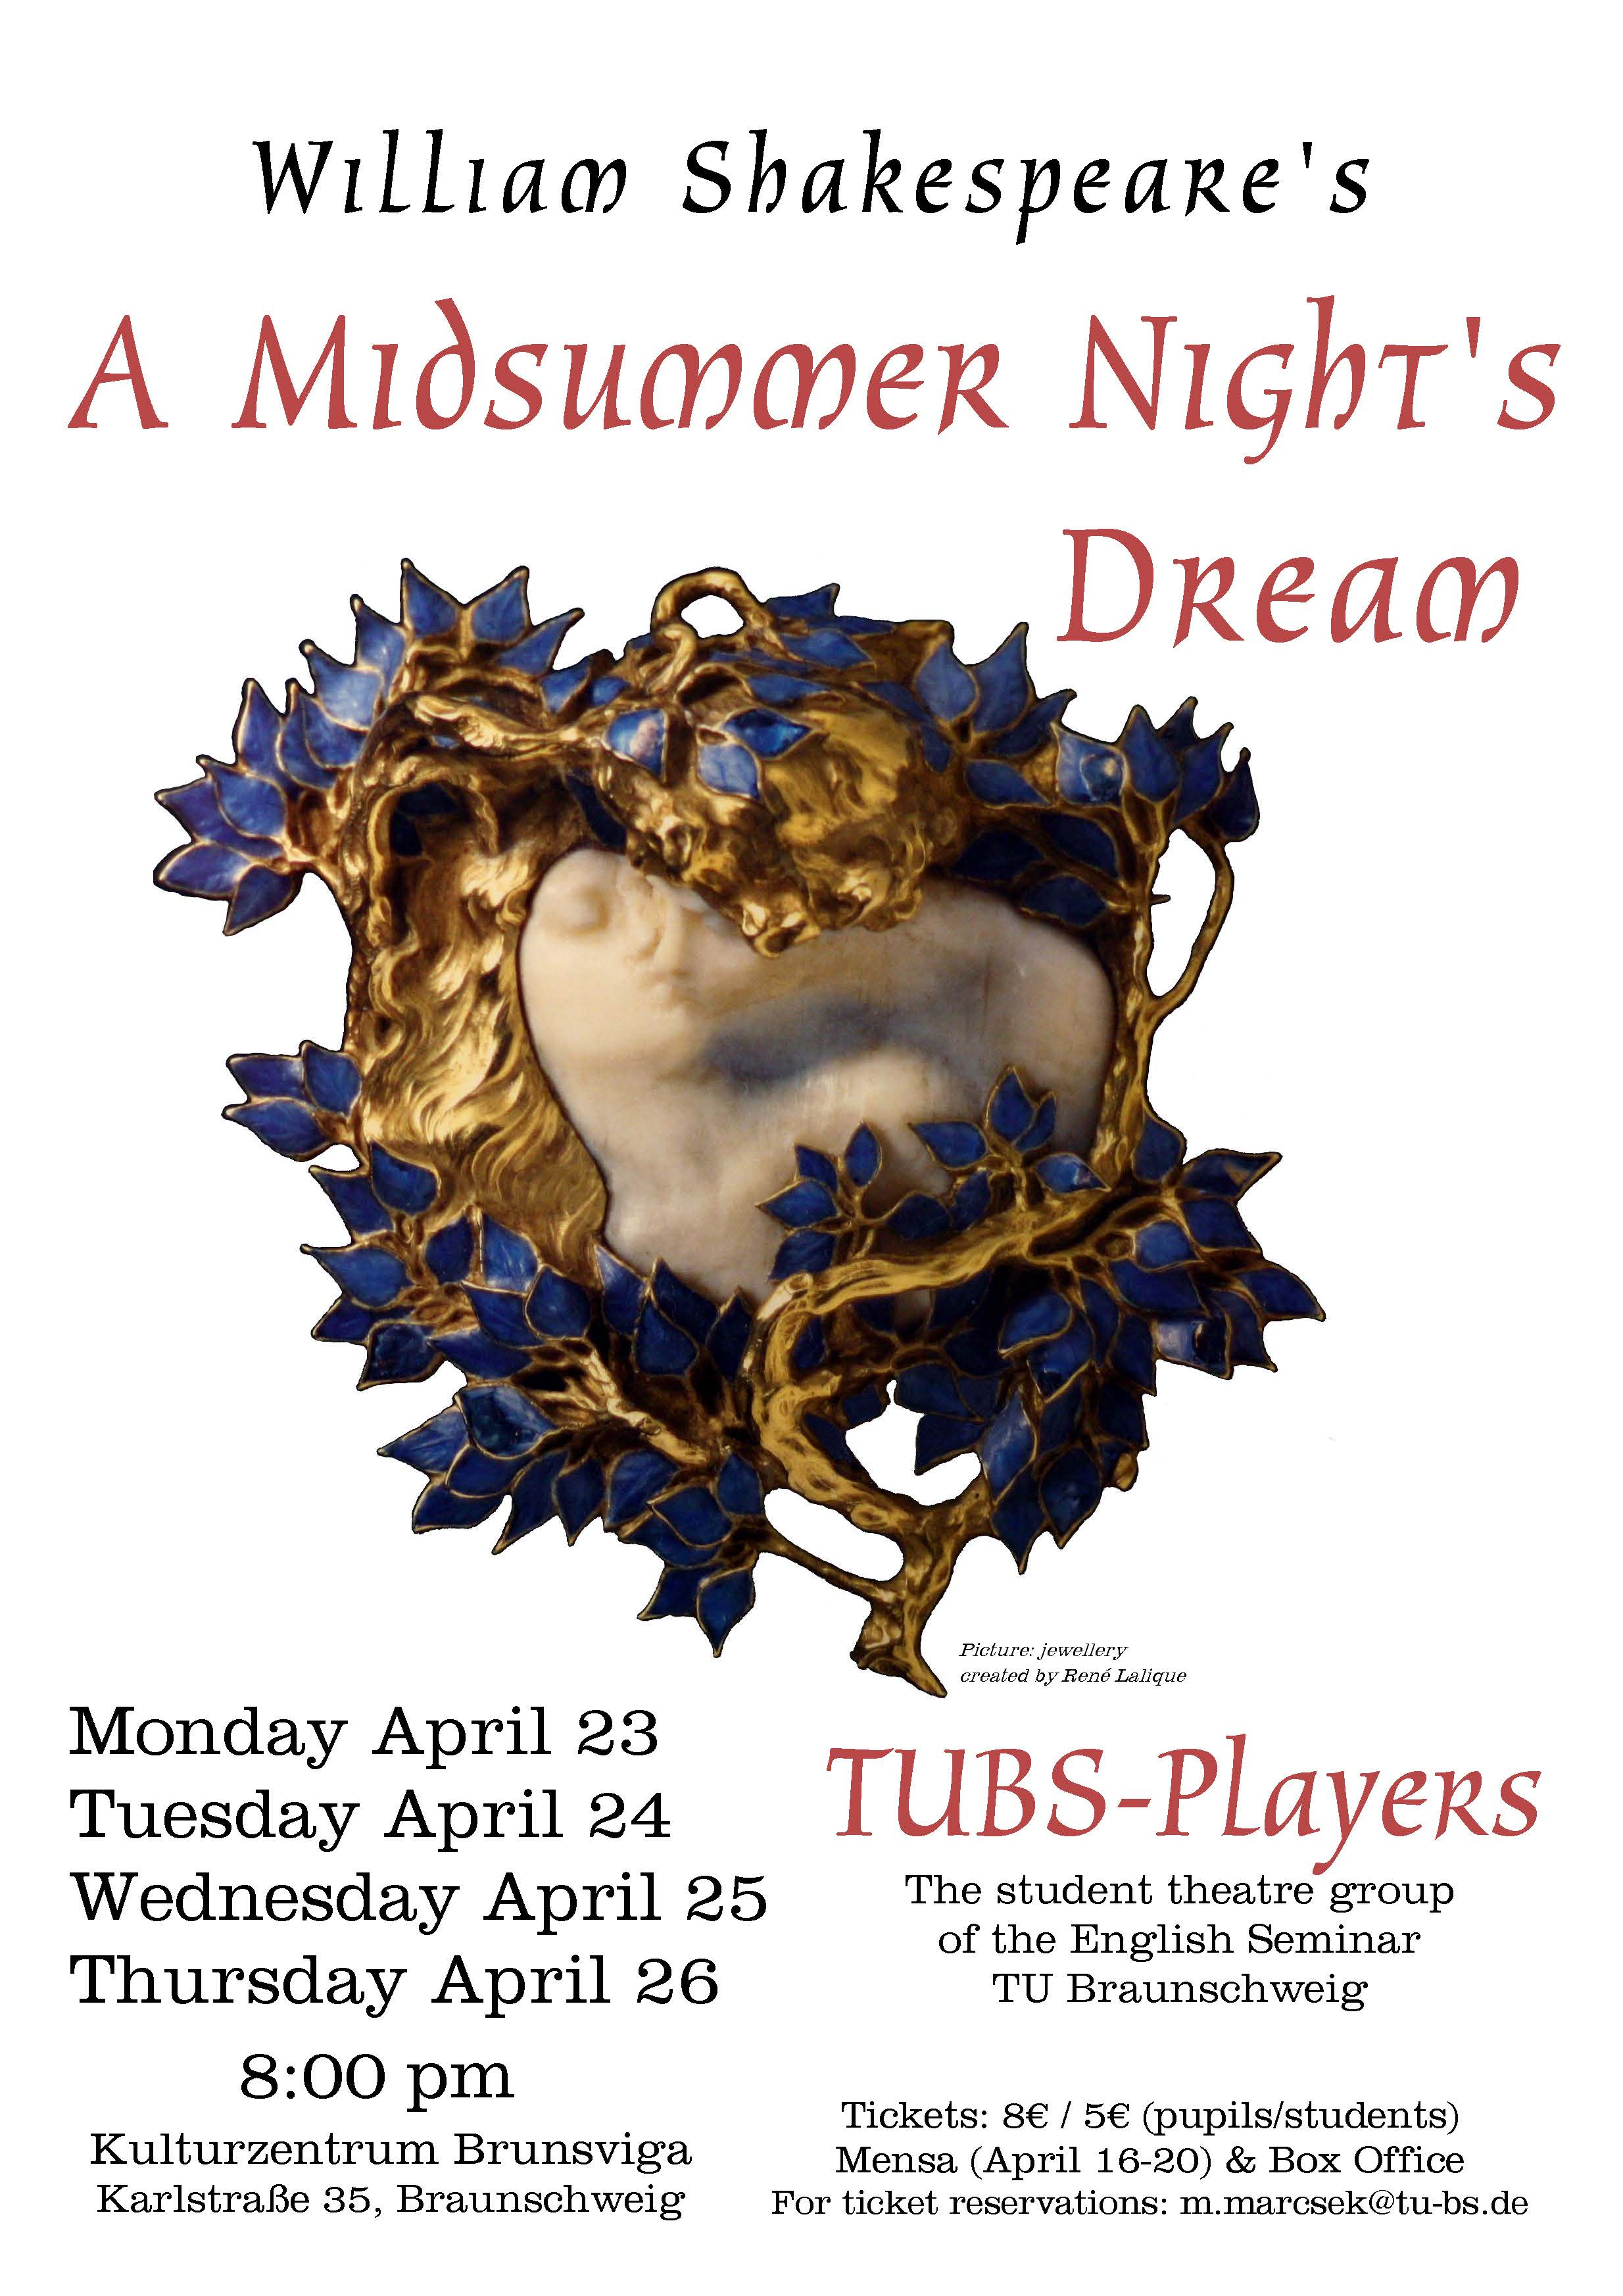 TUBS-Players - A Midsummer Night's Dream - Poster- SoSe 2012